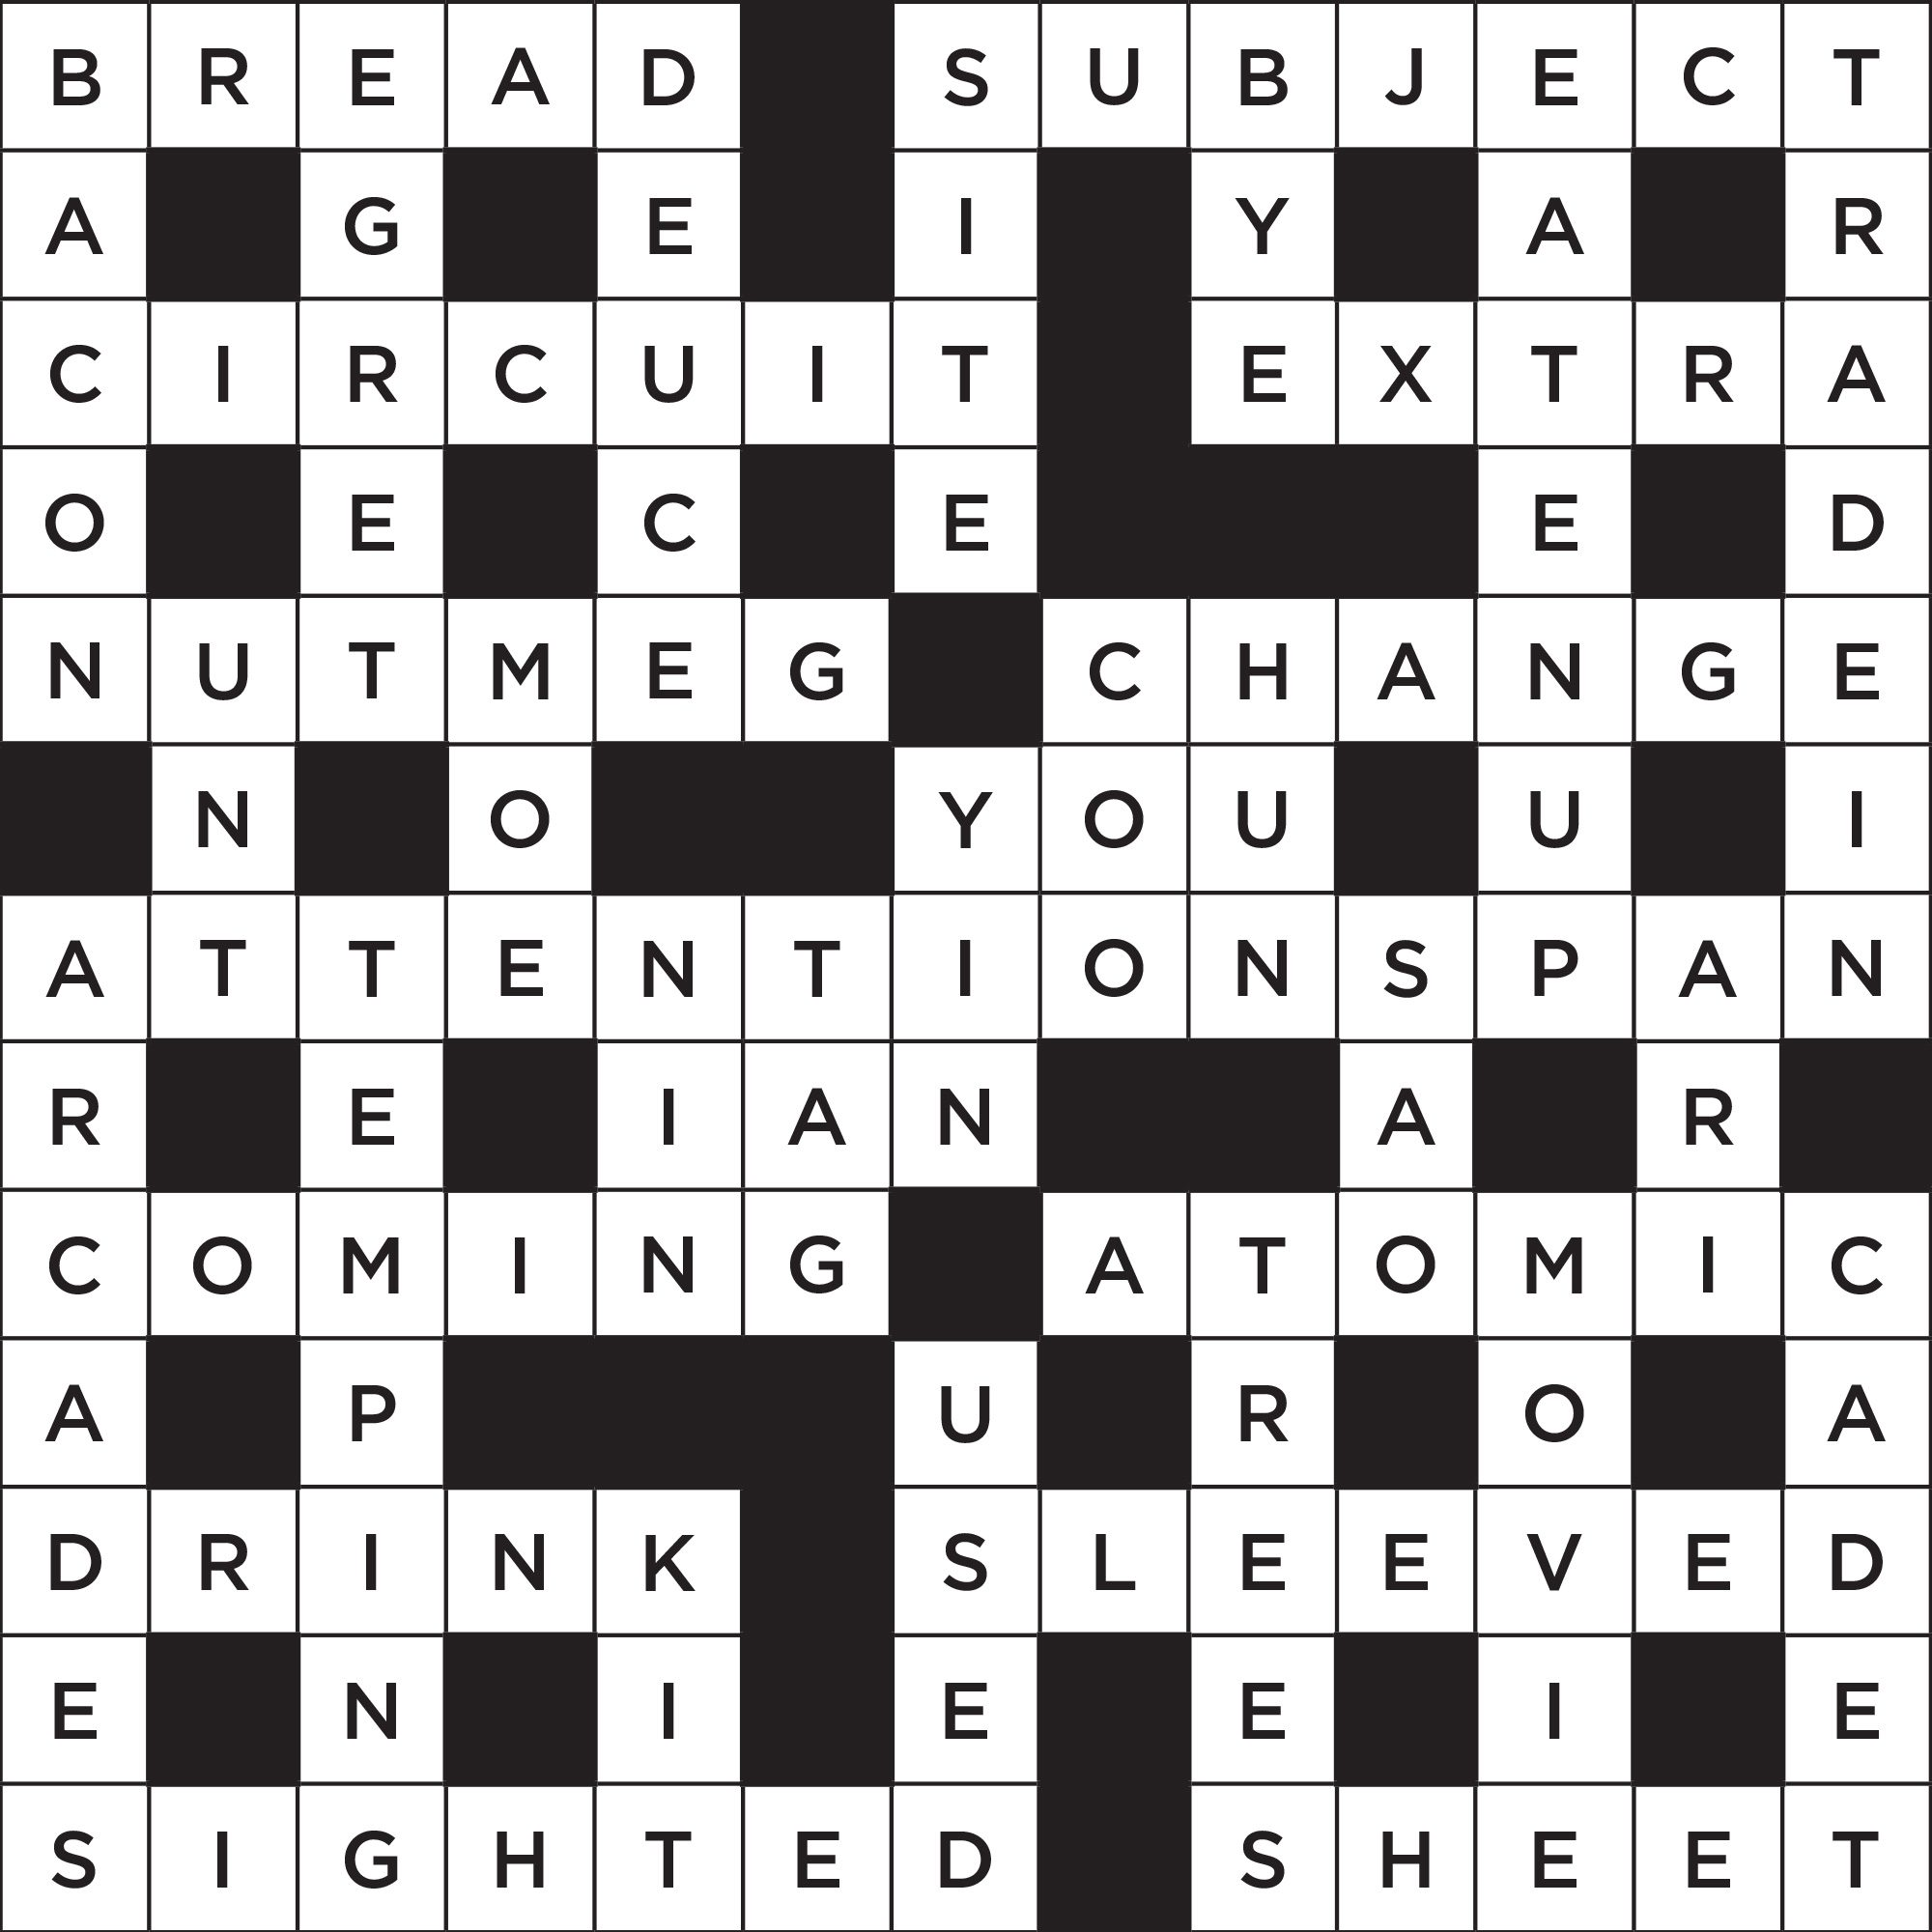 short themed crossword puzzle